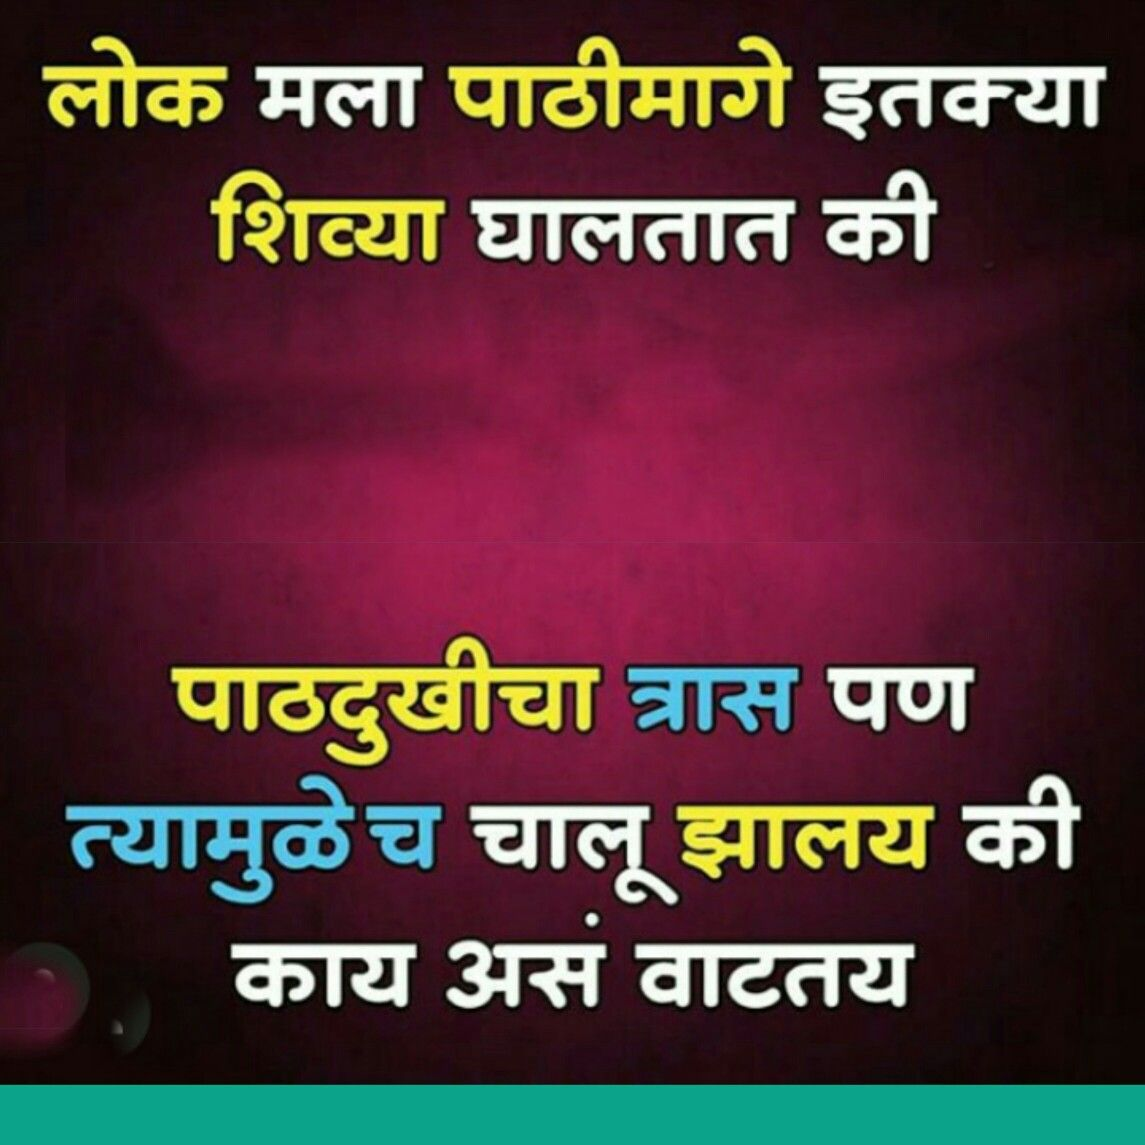 Pin by appa jadhav on Marathi quotes Fun quotes funny